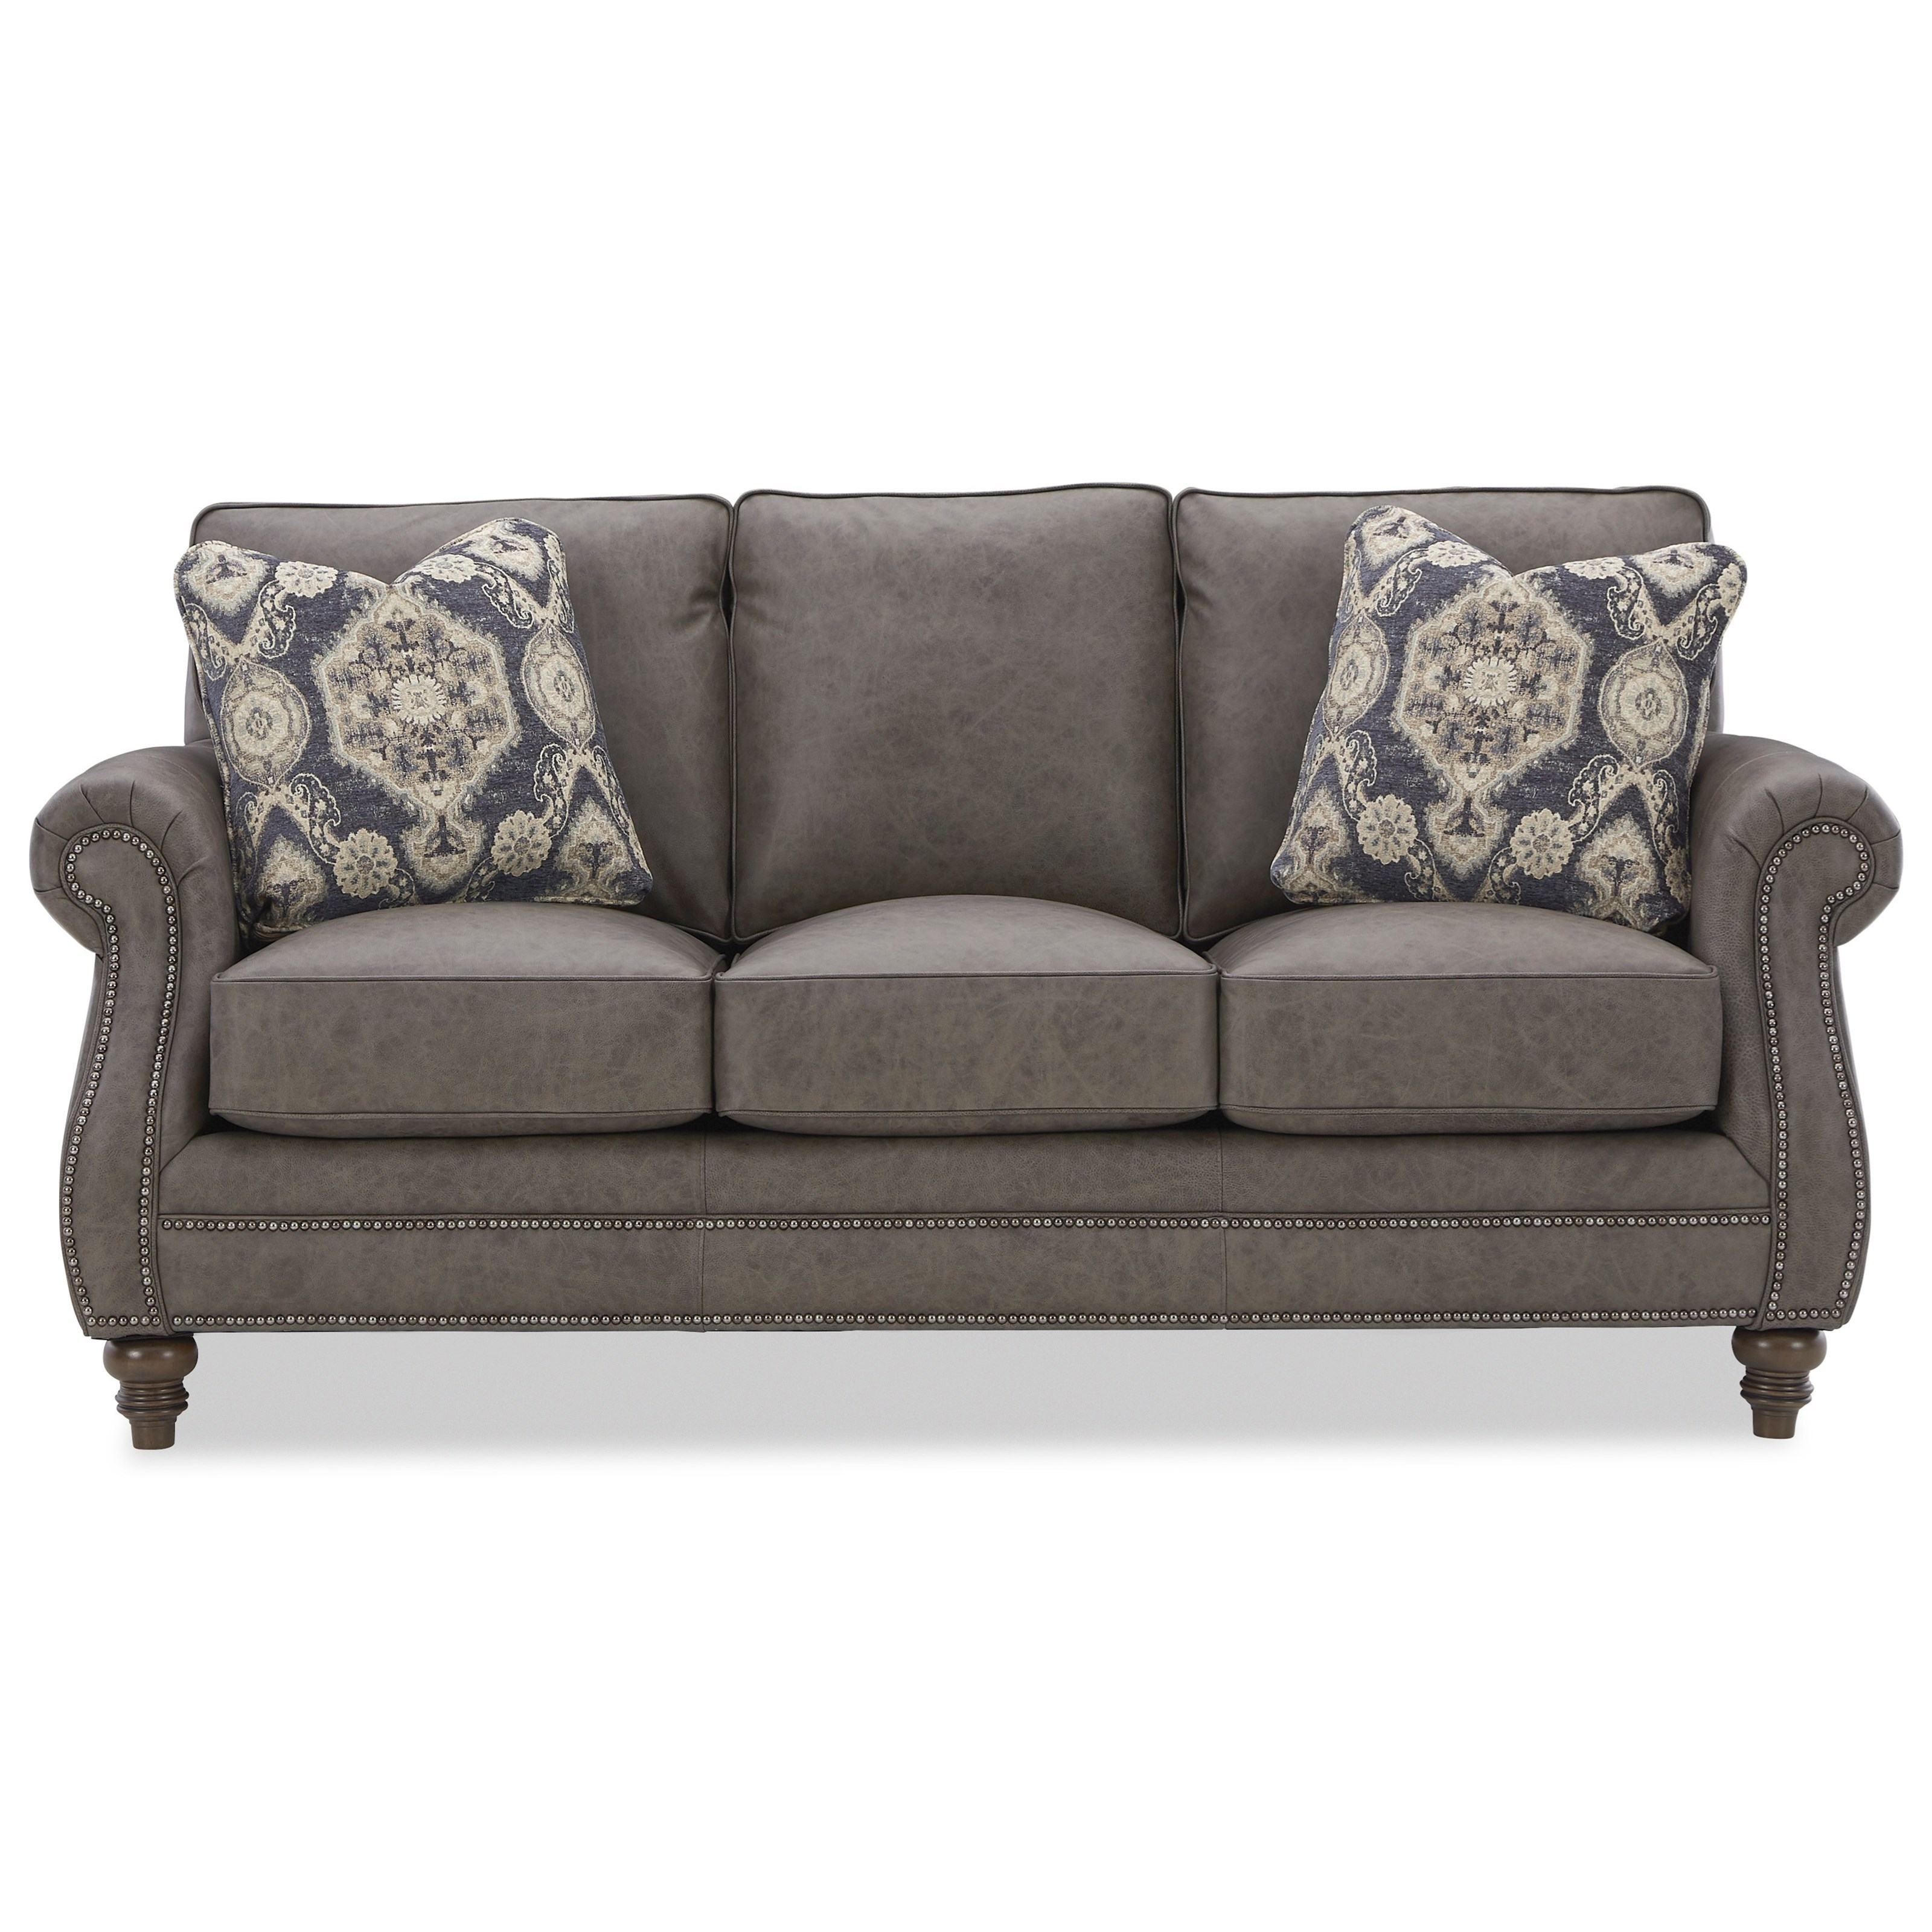 L791050BD Sofa with Pillows by Craftmaster at Baer's Furniture